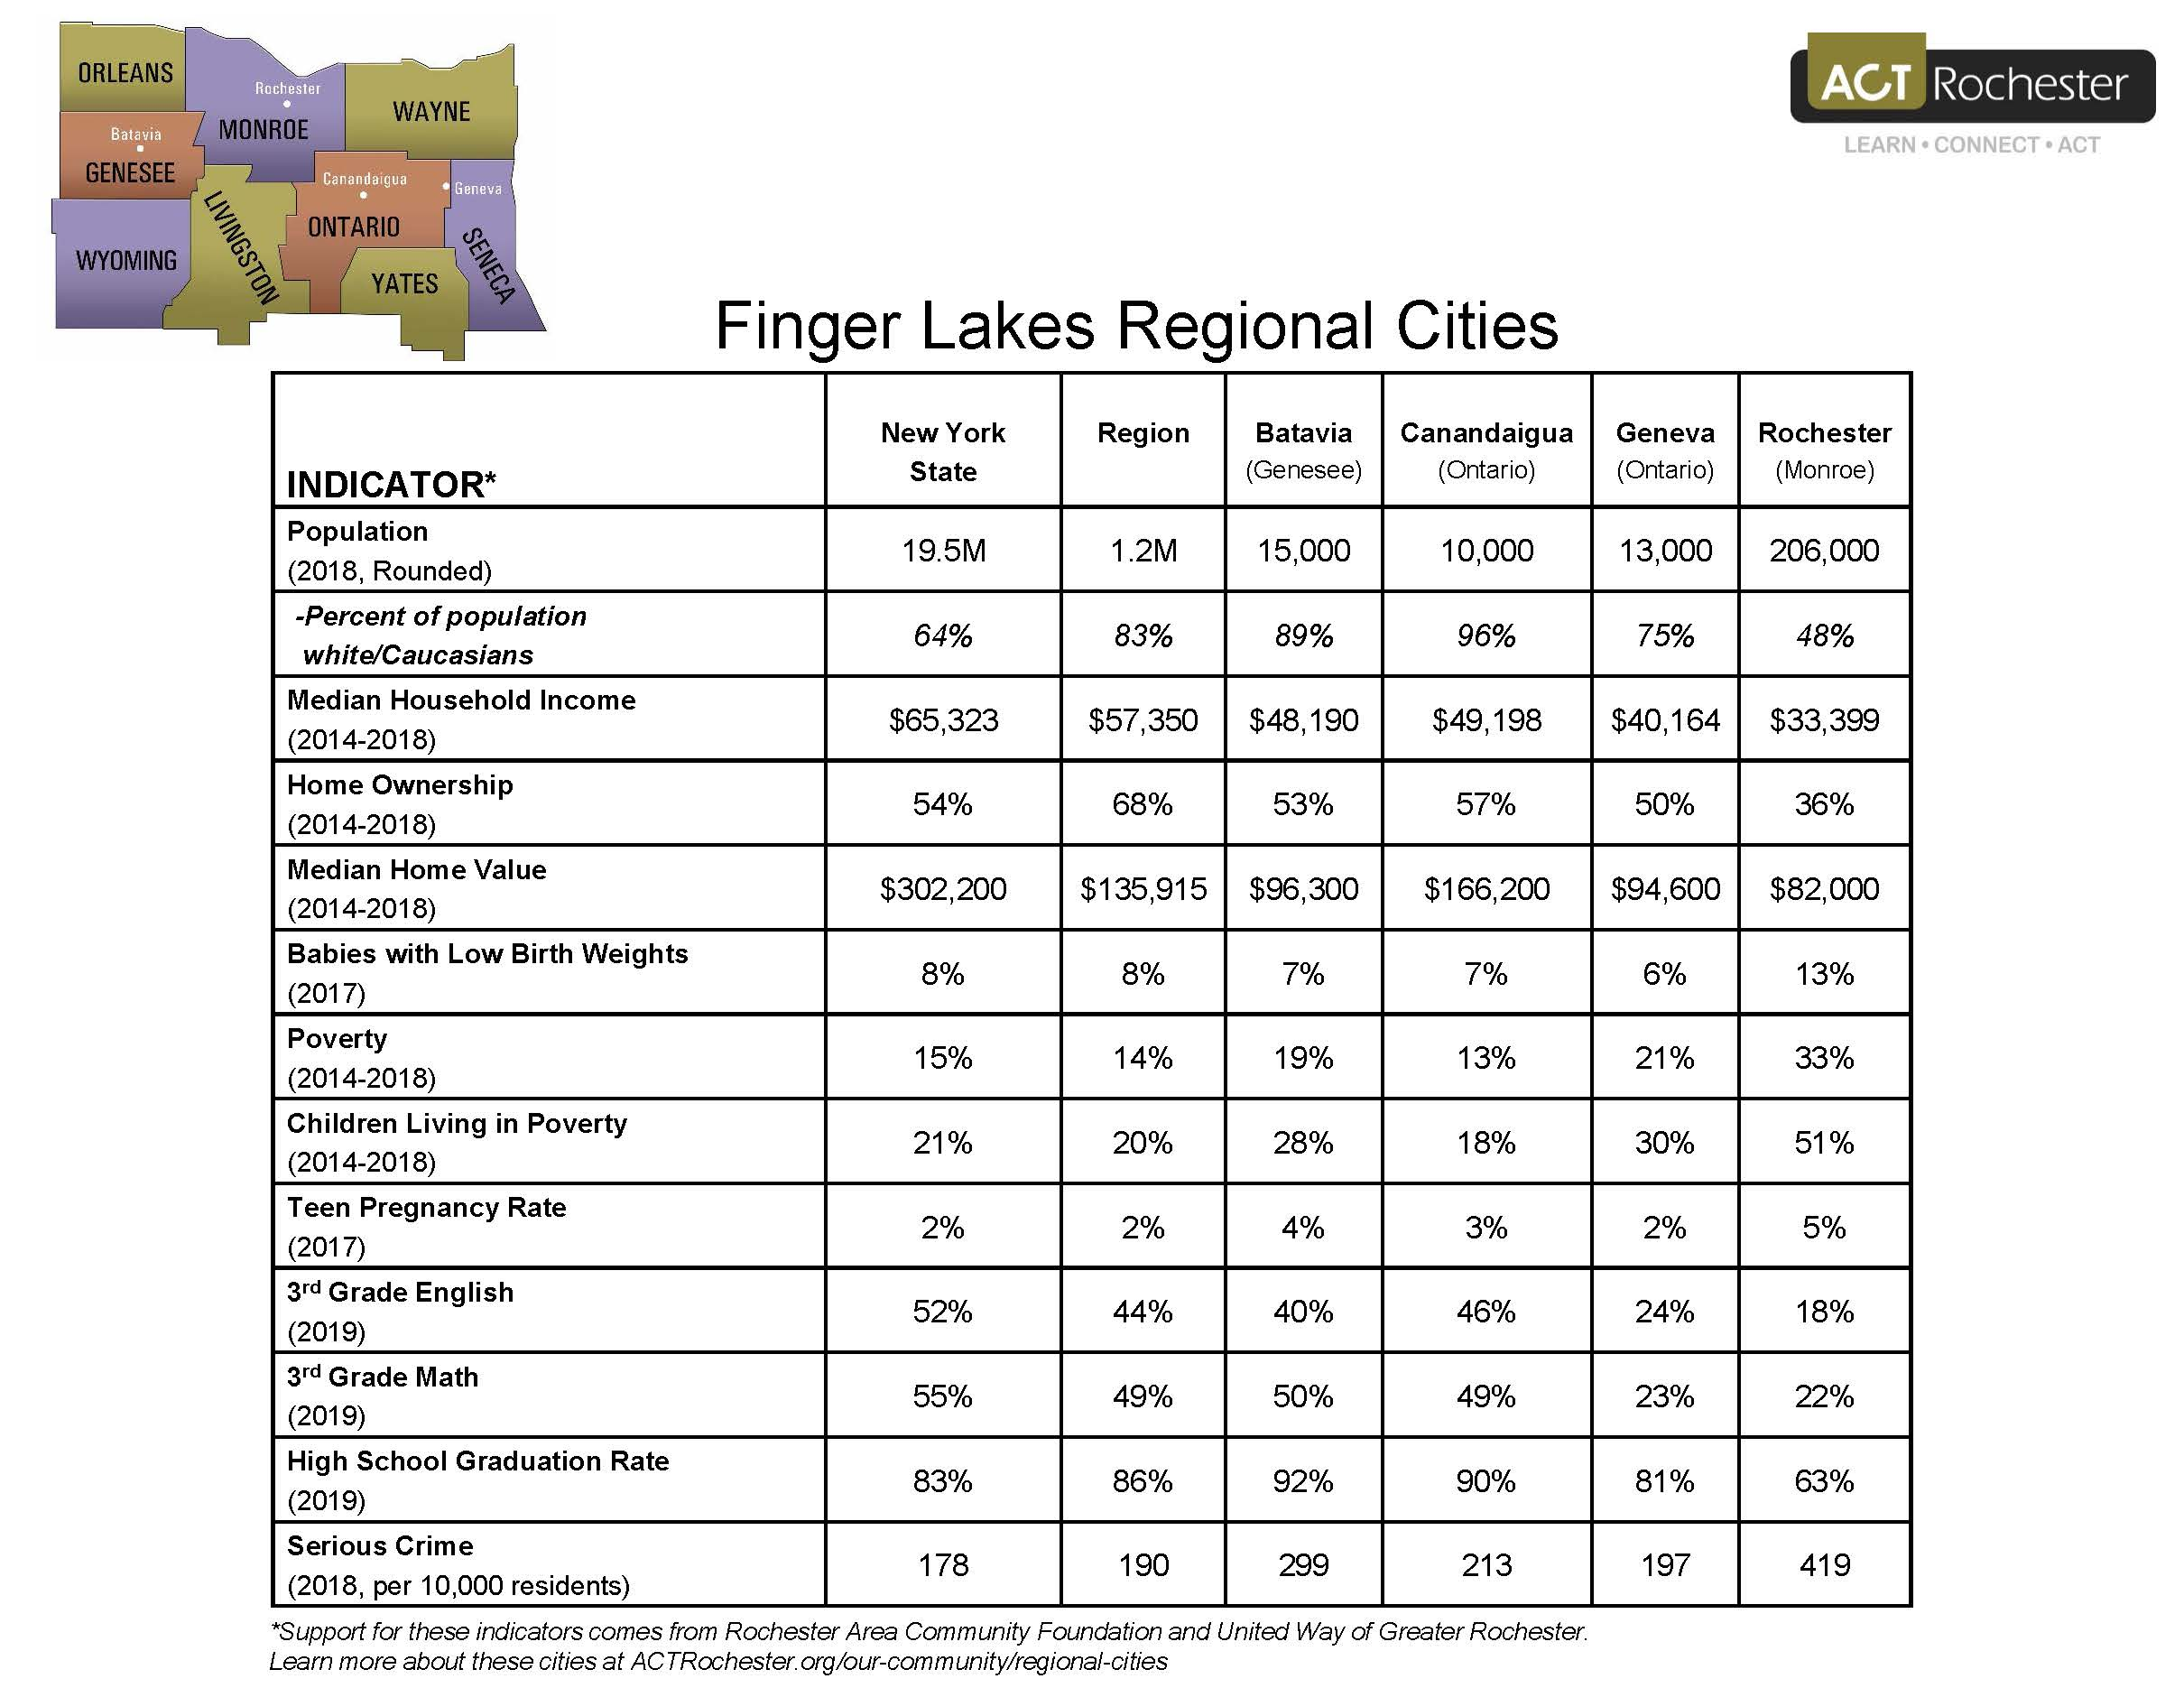 2020 Regional Cities comparison table